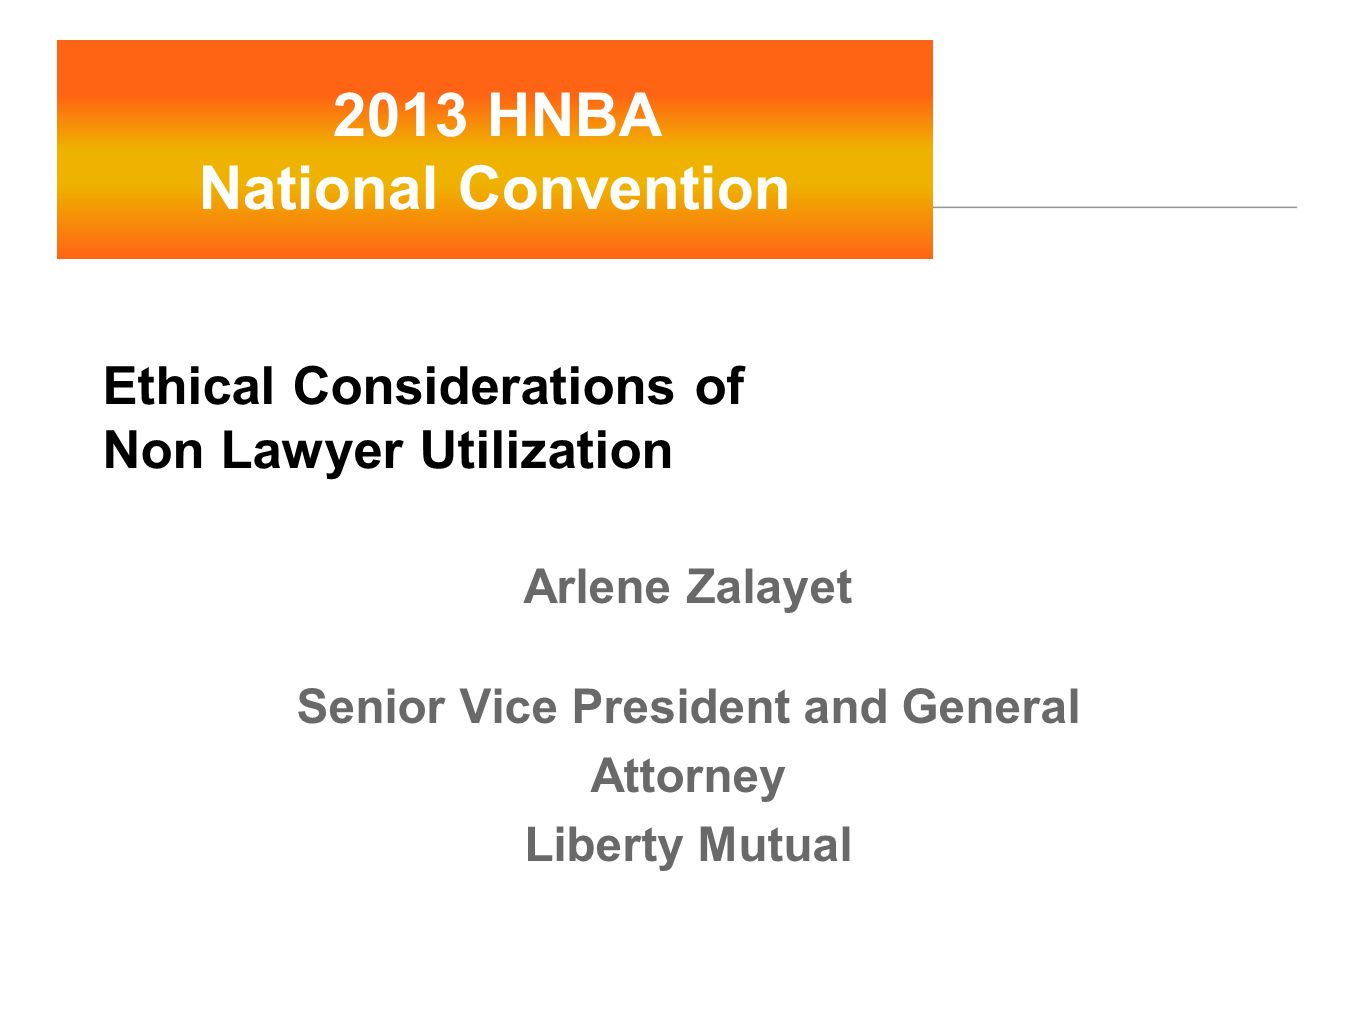 Ethical Considerations of Non Lawyer Utilization Arlene Zalayet Senior Vice President and General Attorney Liberty Mutual 2013 HNBA National Conventio